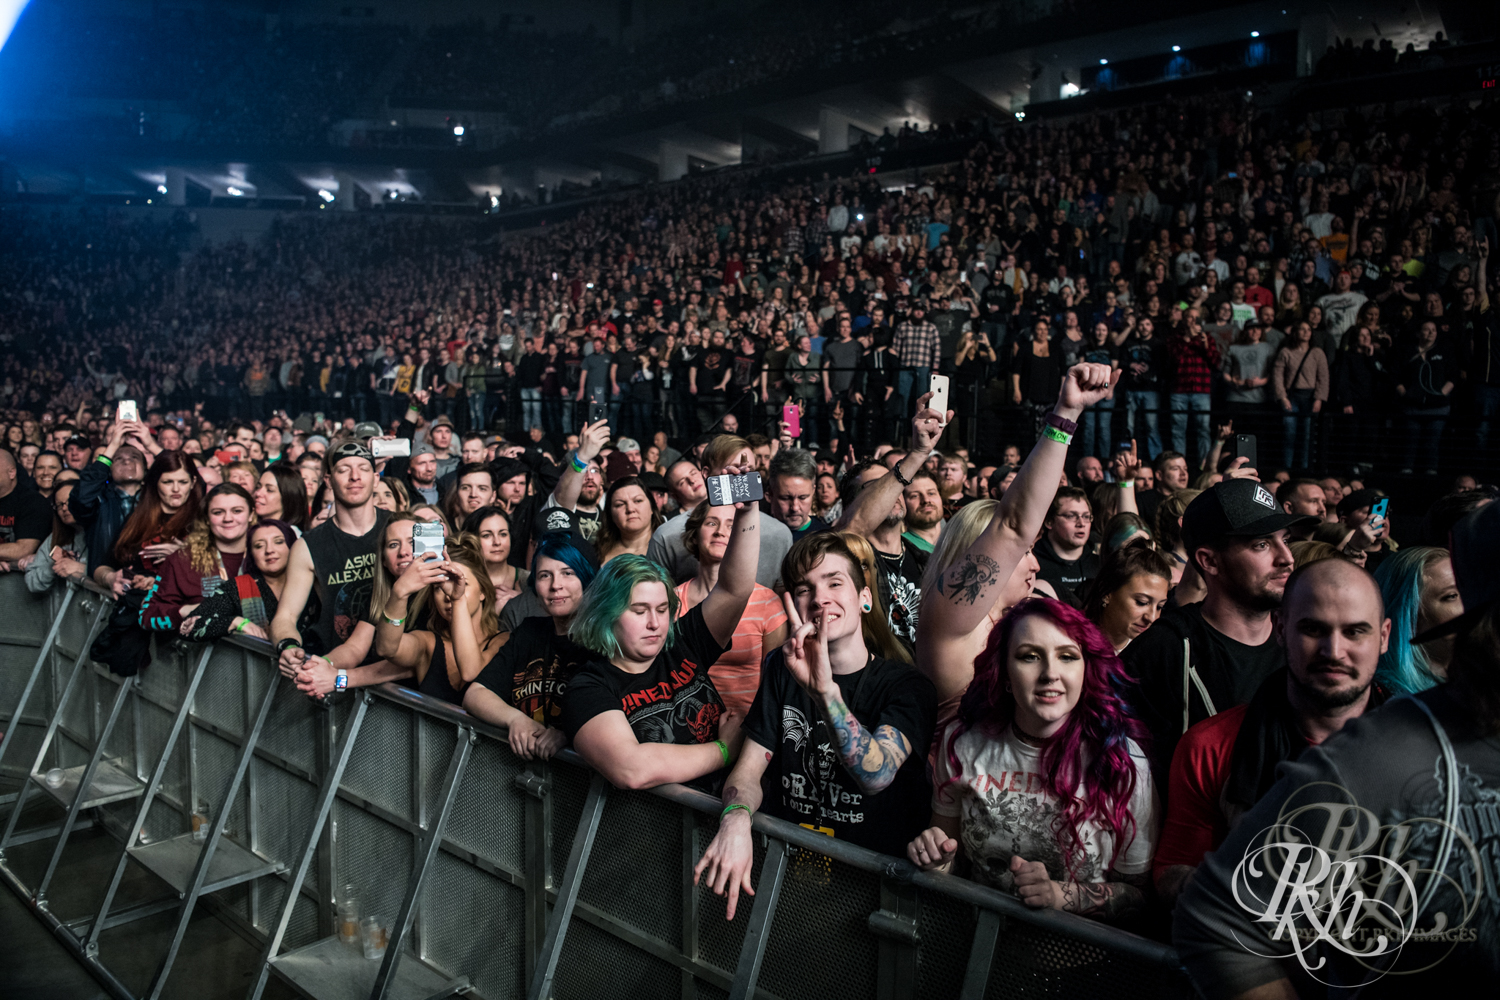 Shinedown - Minnesota Concert Photography - Target Center - Minneapolis - RKH Images (16 of 19).jpg